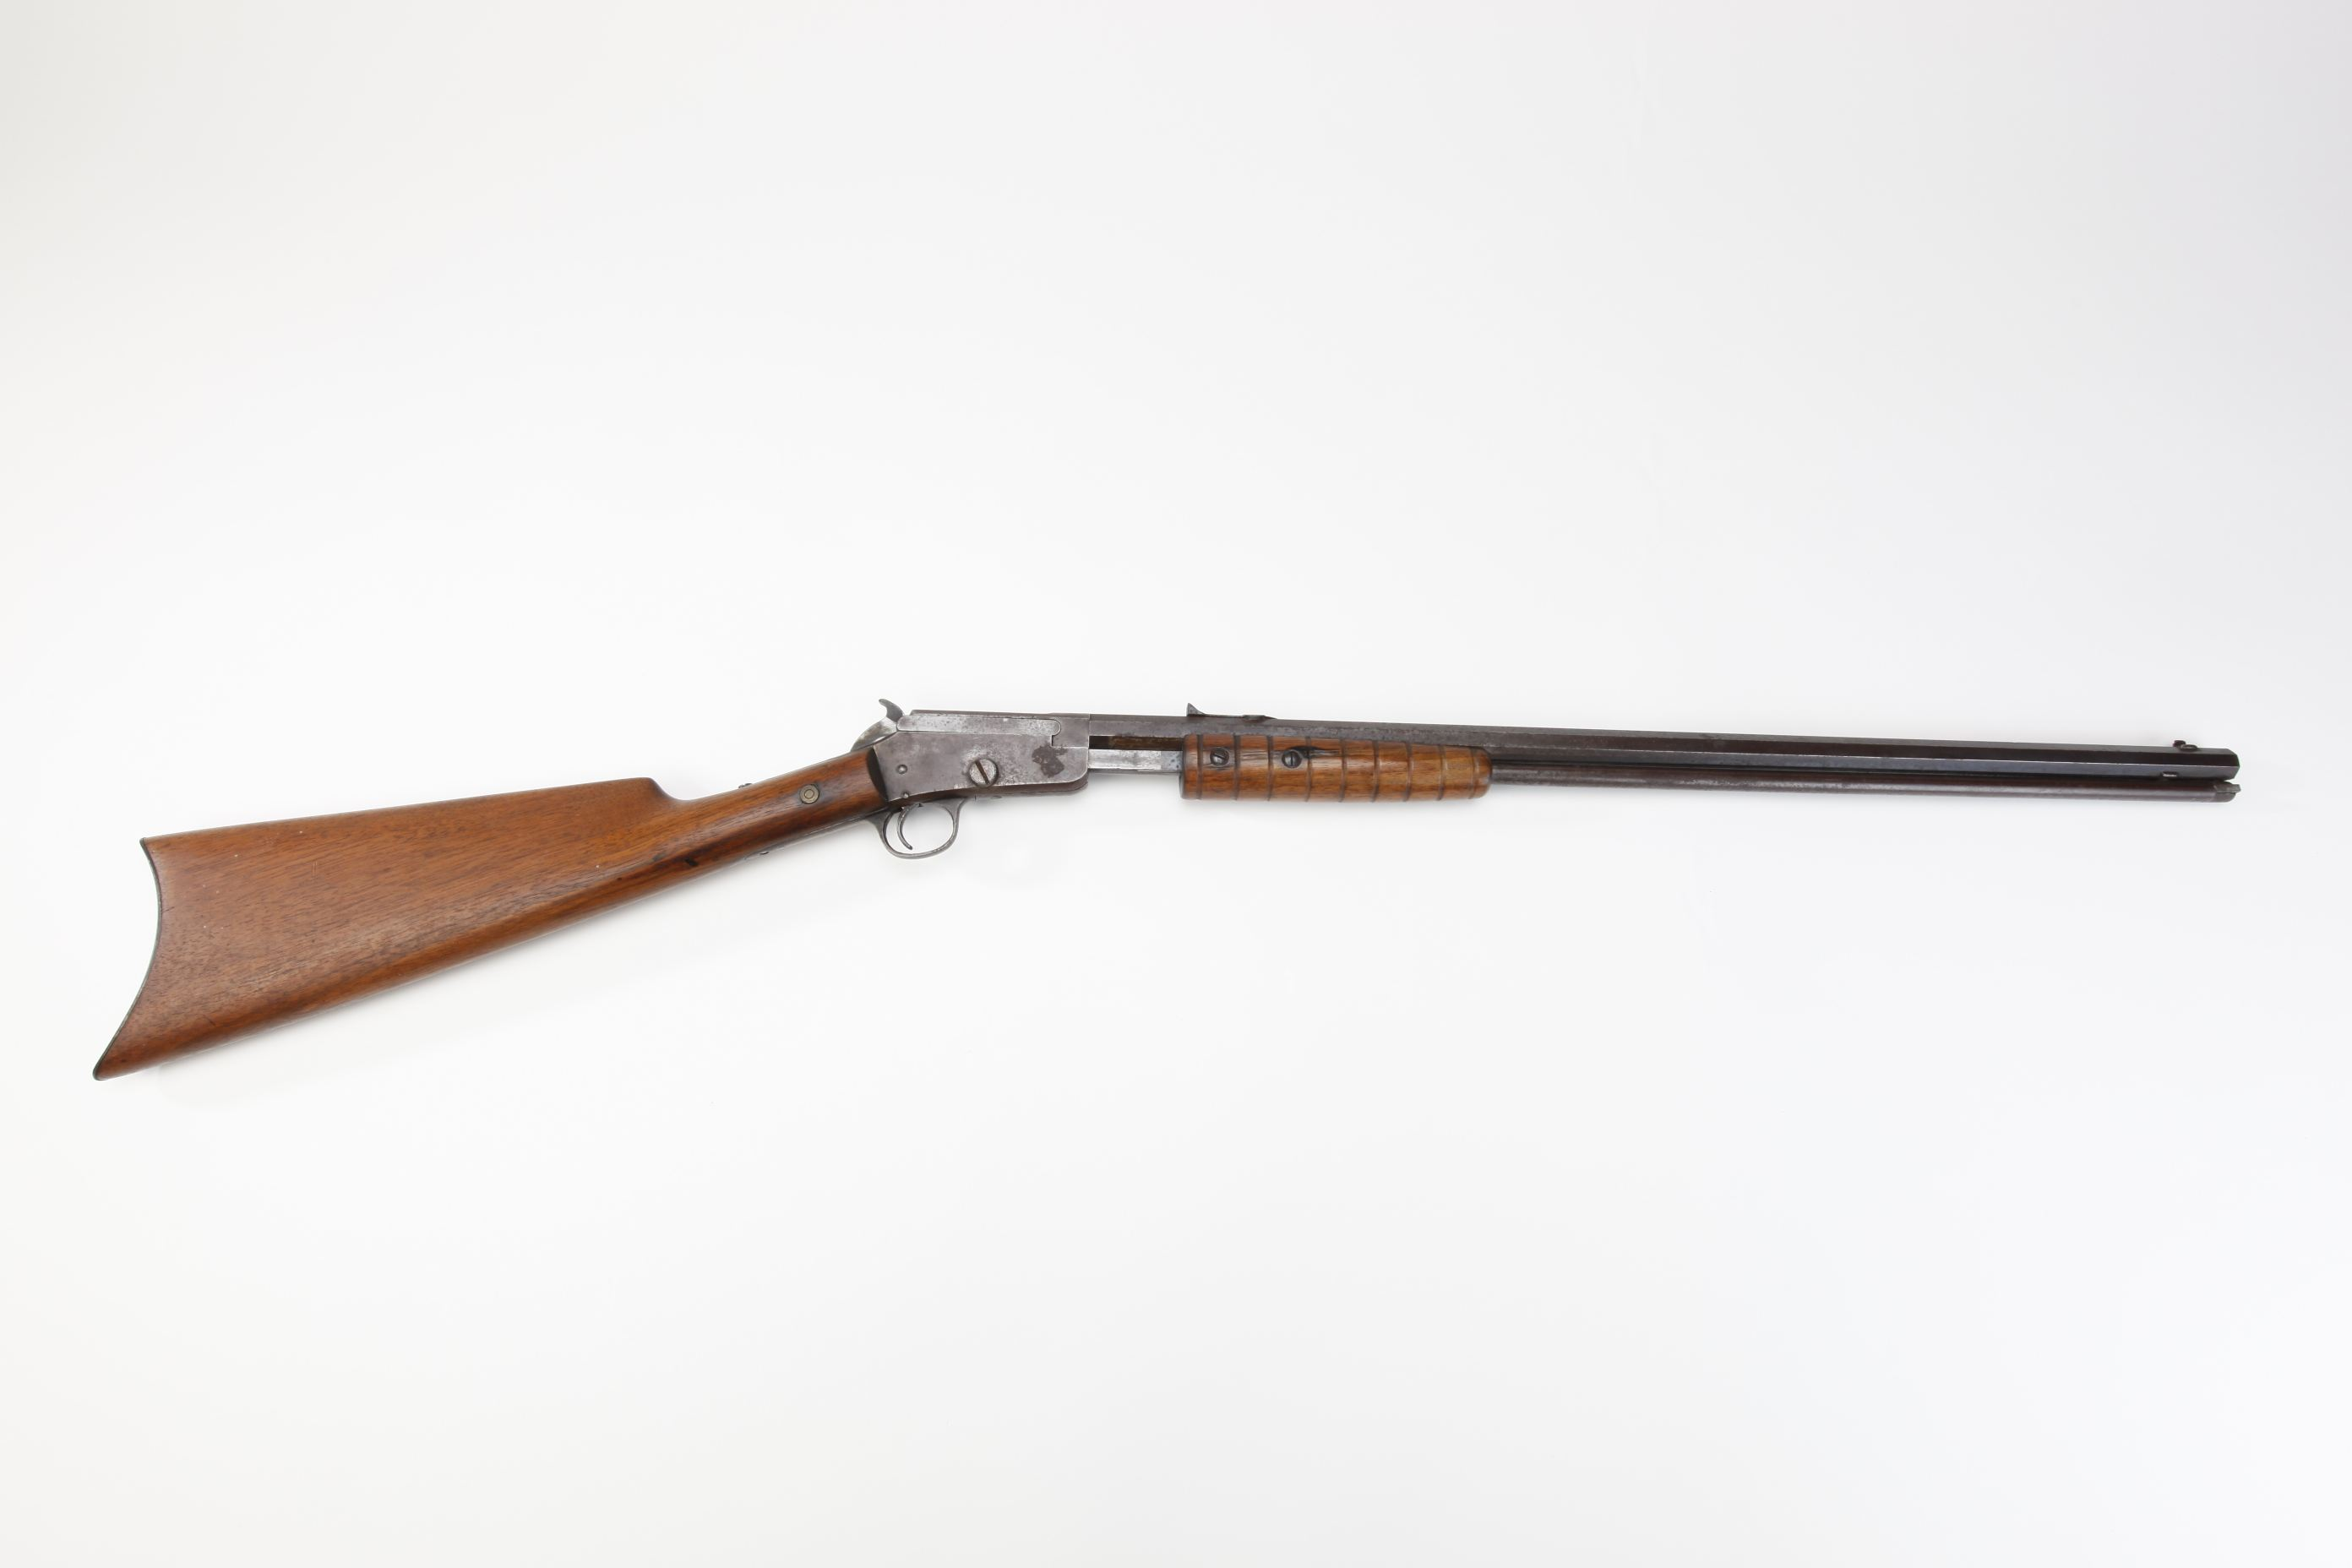 Marlin Model 20S rifle